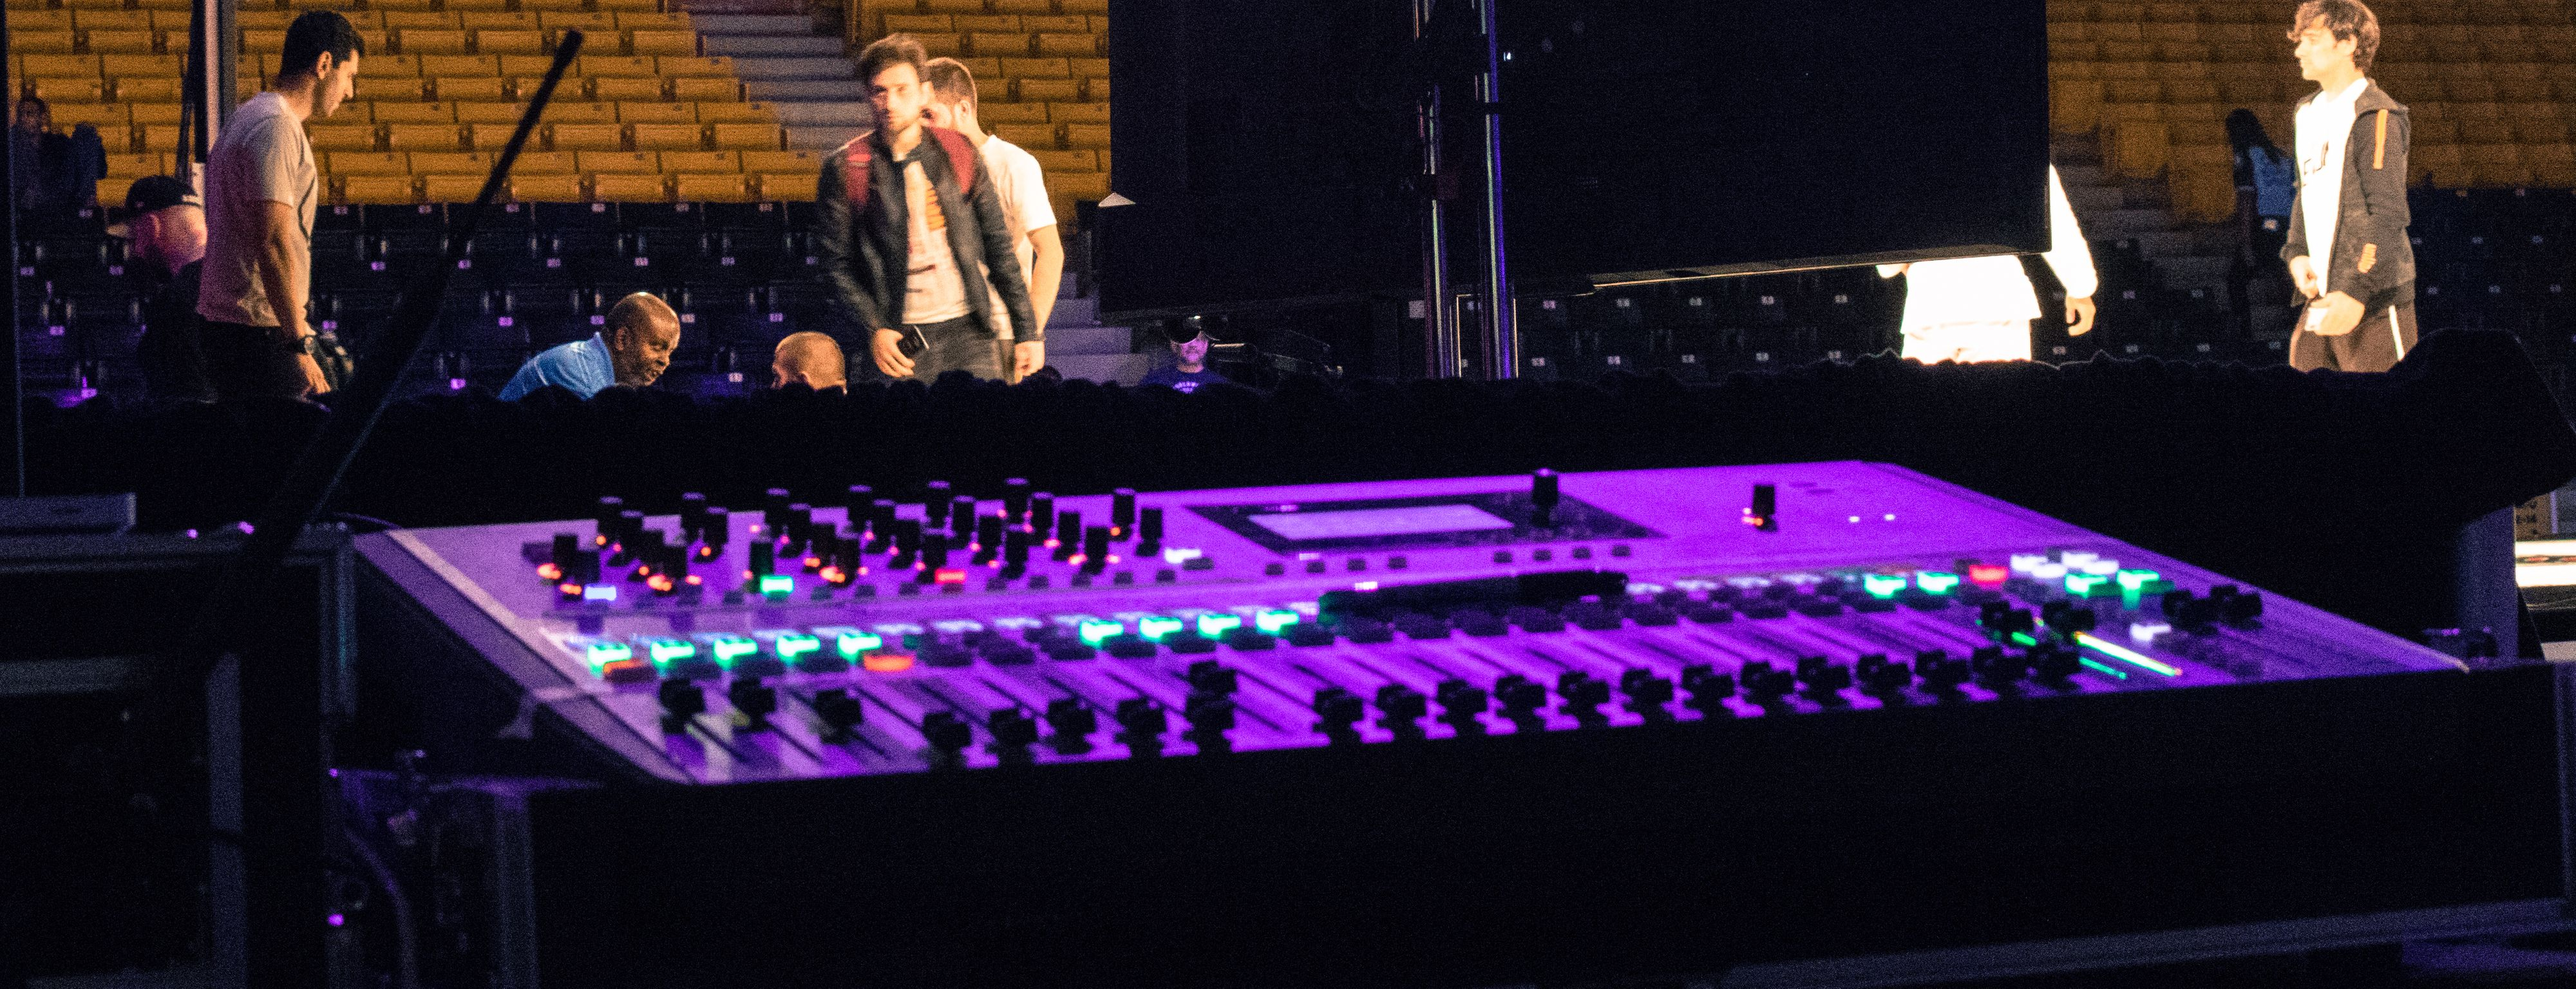 An audio mixer at a Los Angeles event